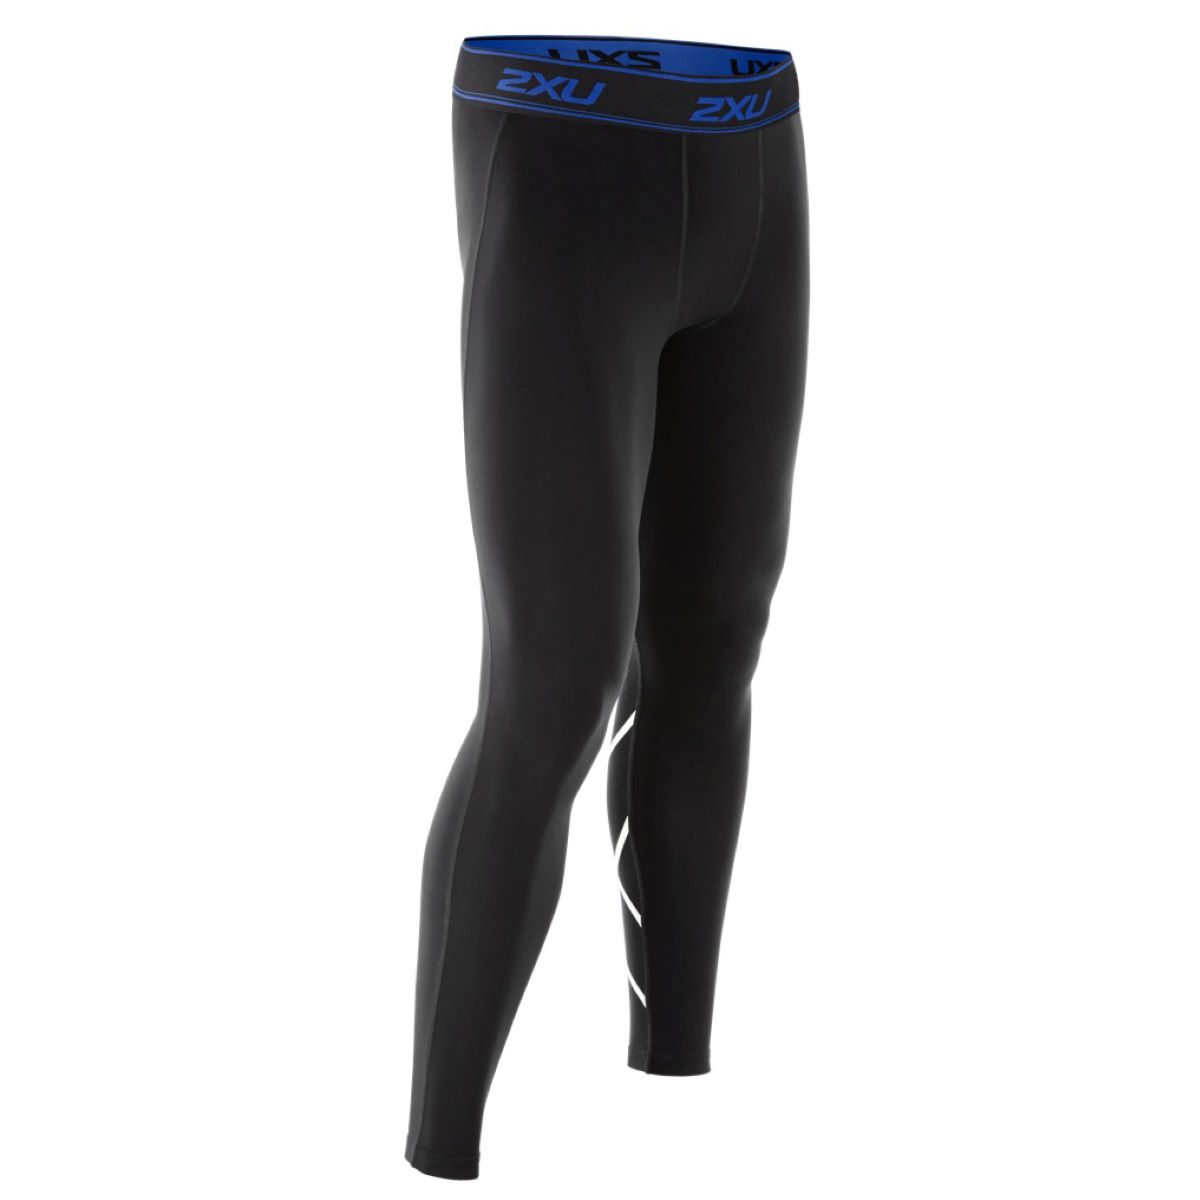 2XU Fitness Compression Tight (SS17) - Large Black/White